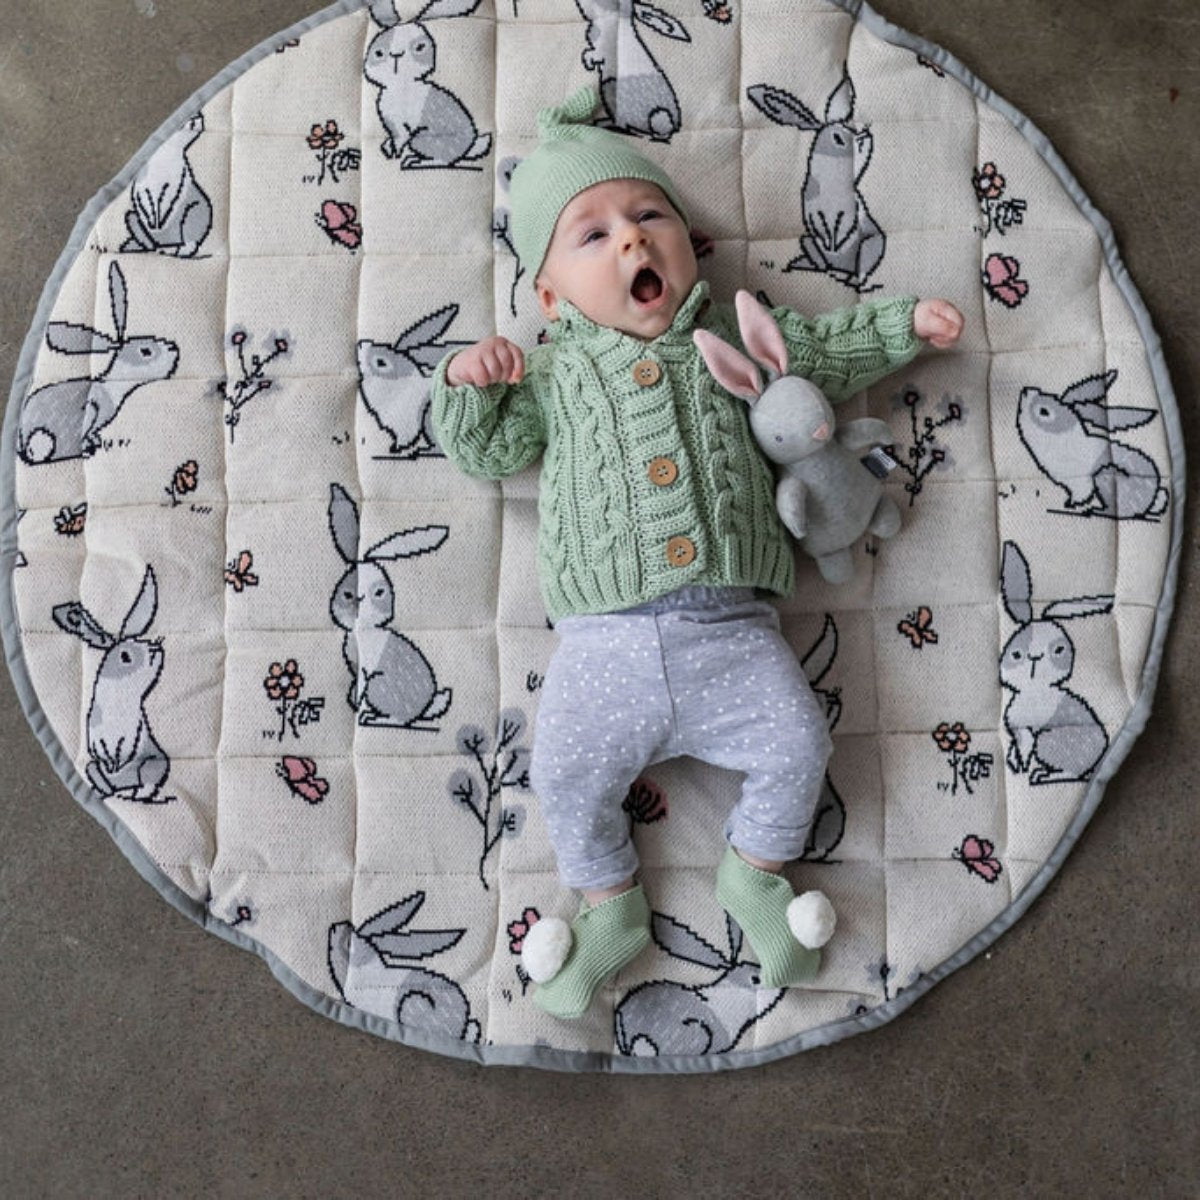 Di Lusso Living - Play Mat - Barnie Bunny